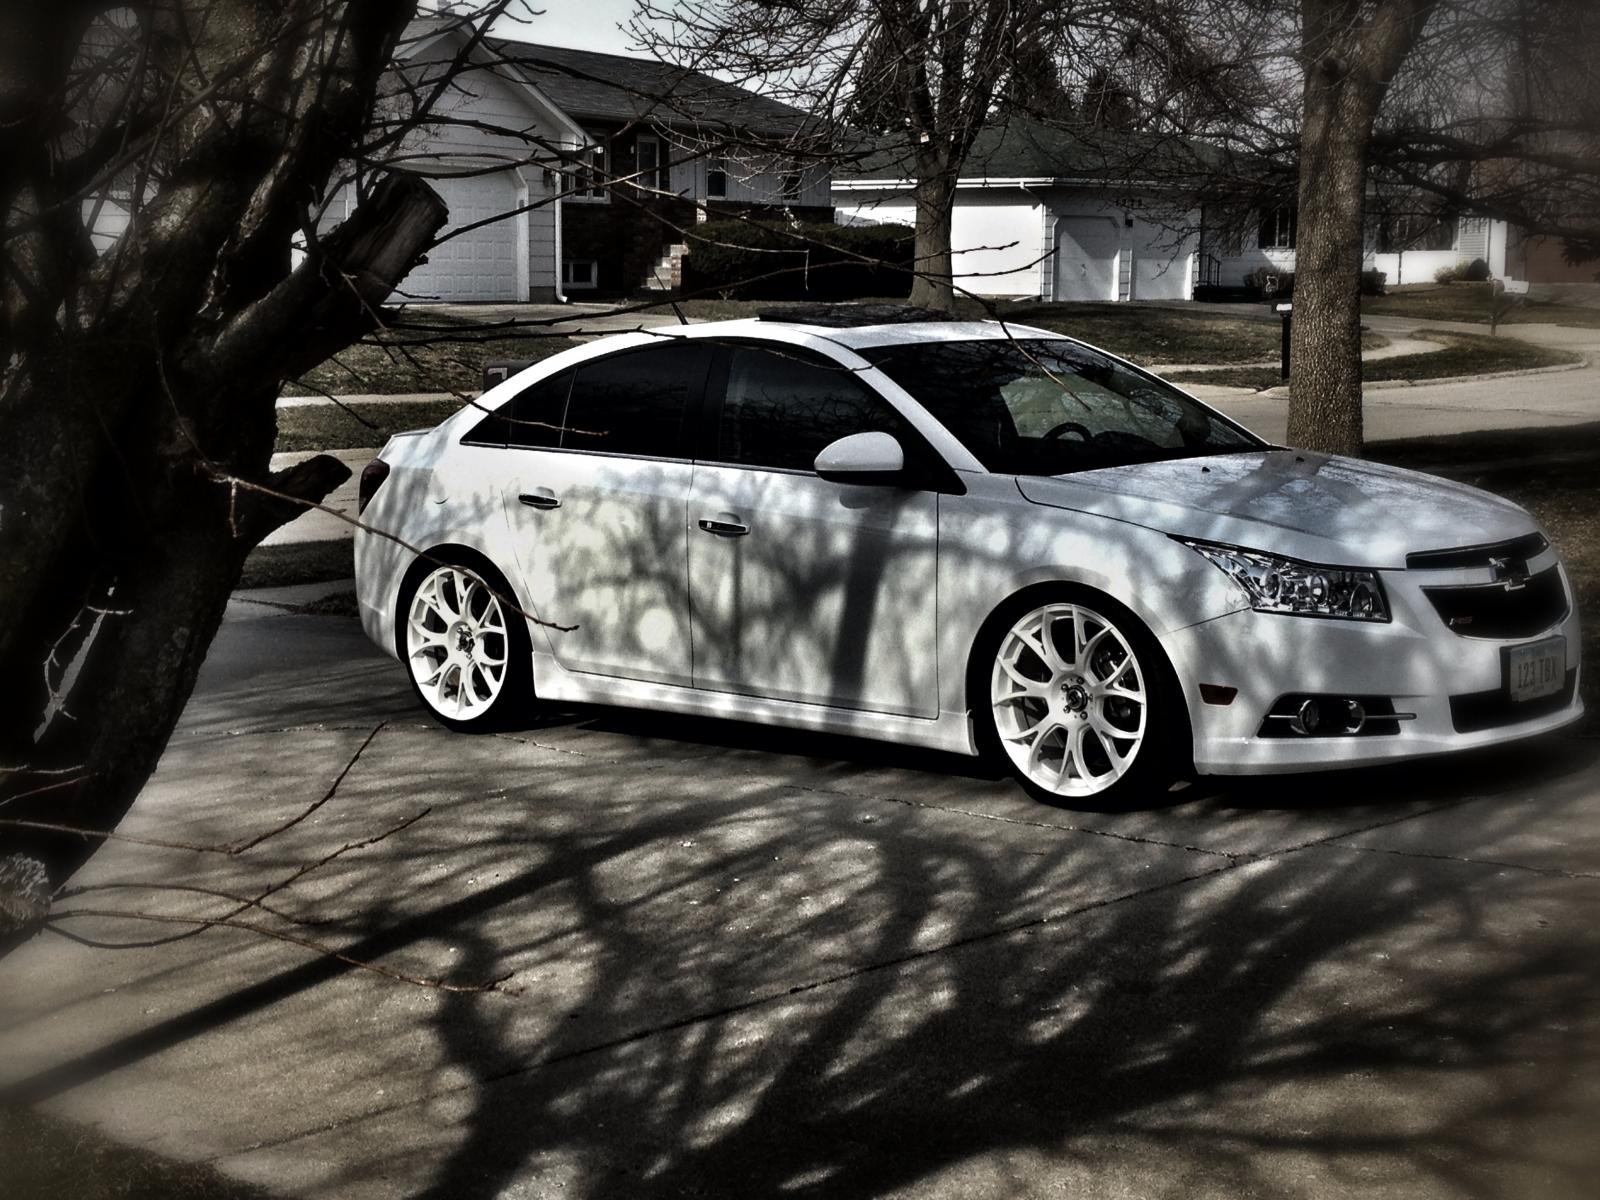 Chevy Cruze 14 Turbo Thread: Dharvey72's 2012 RS White Out